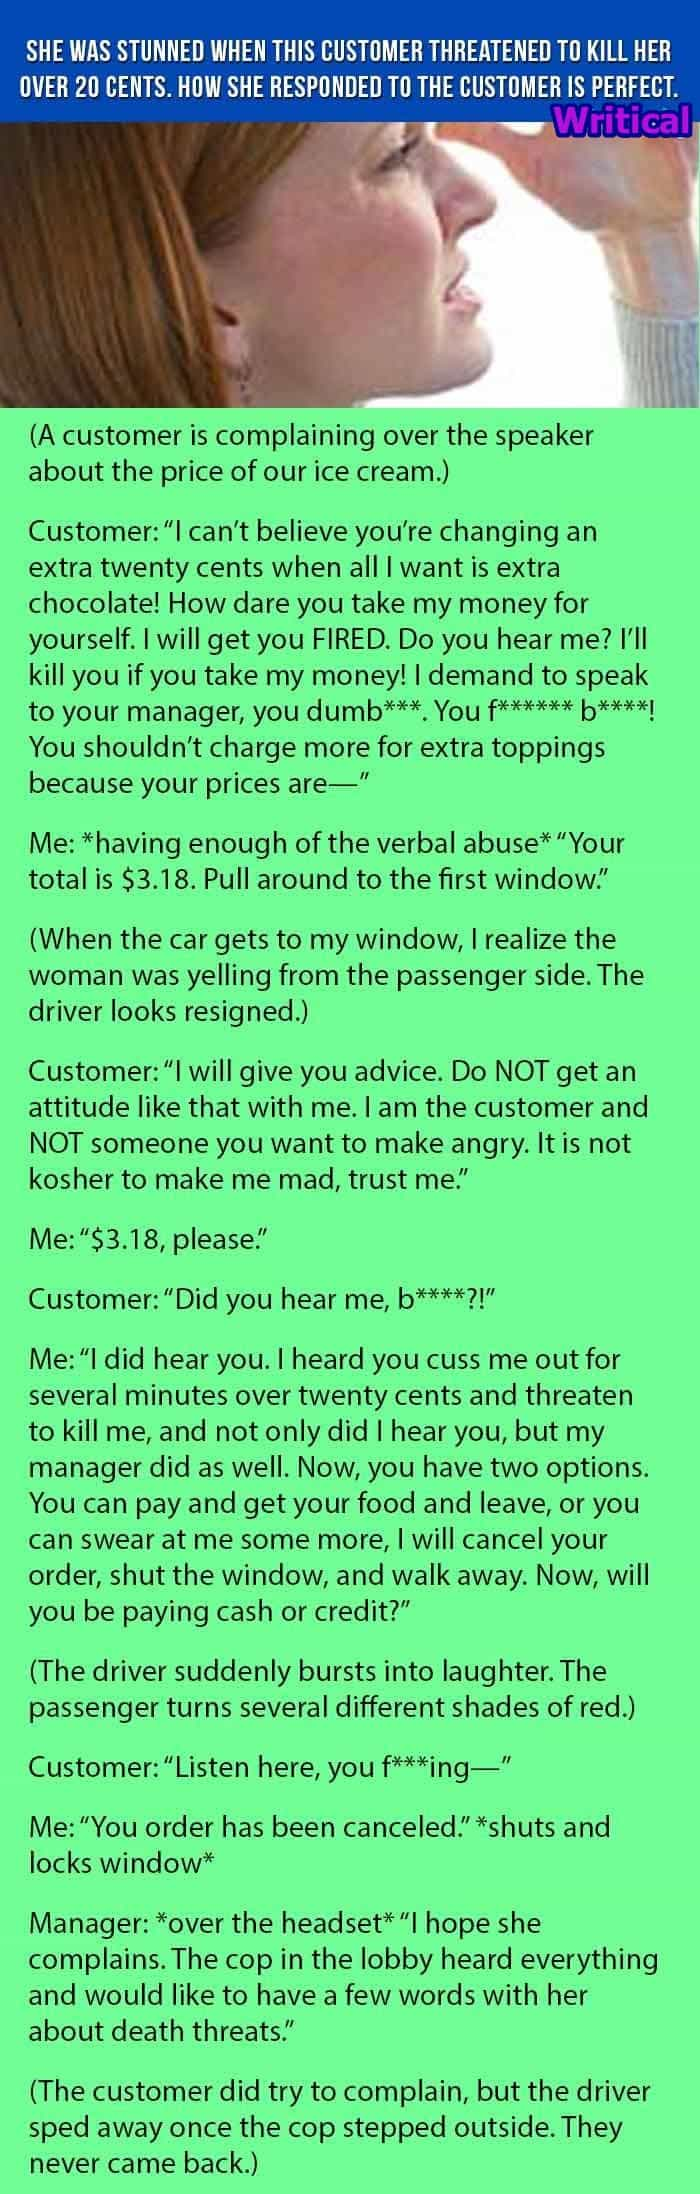 Customer threatened to kill her, but what follows next is perfect